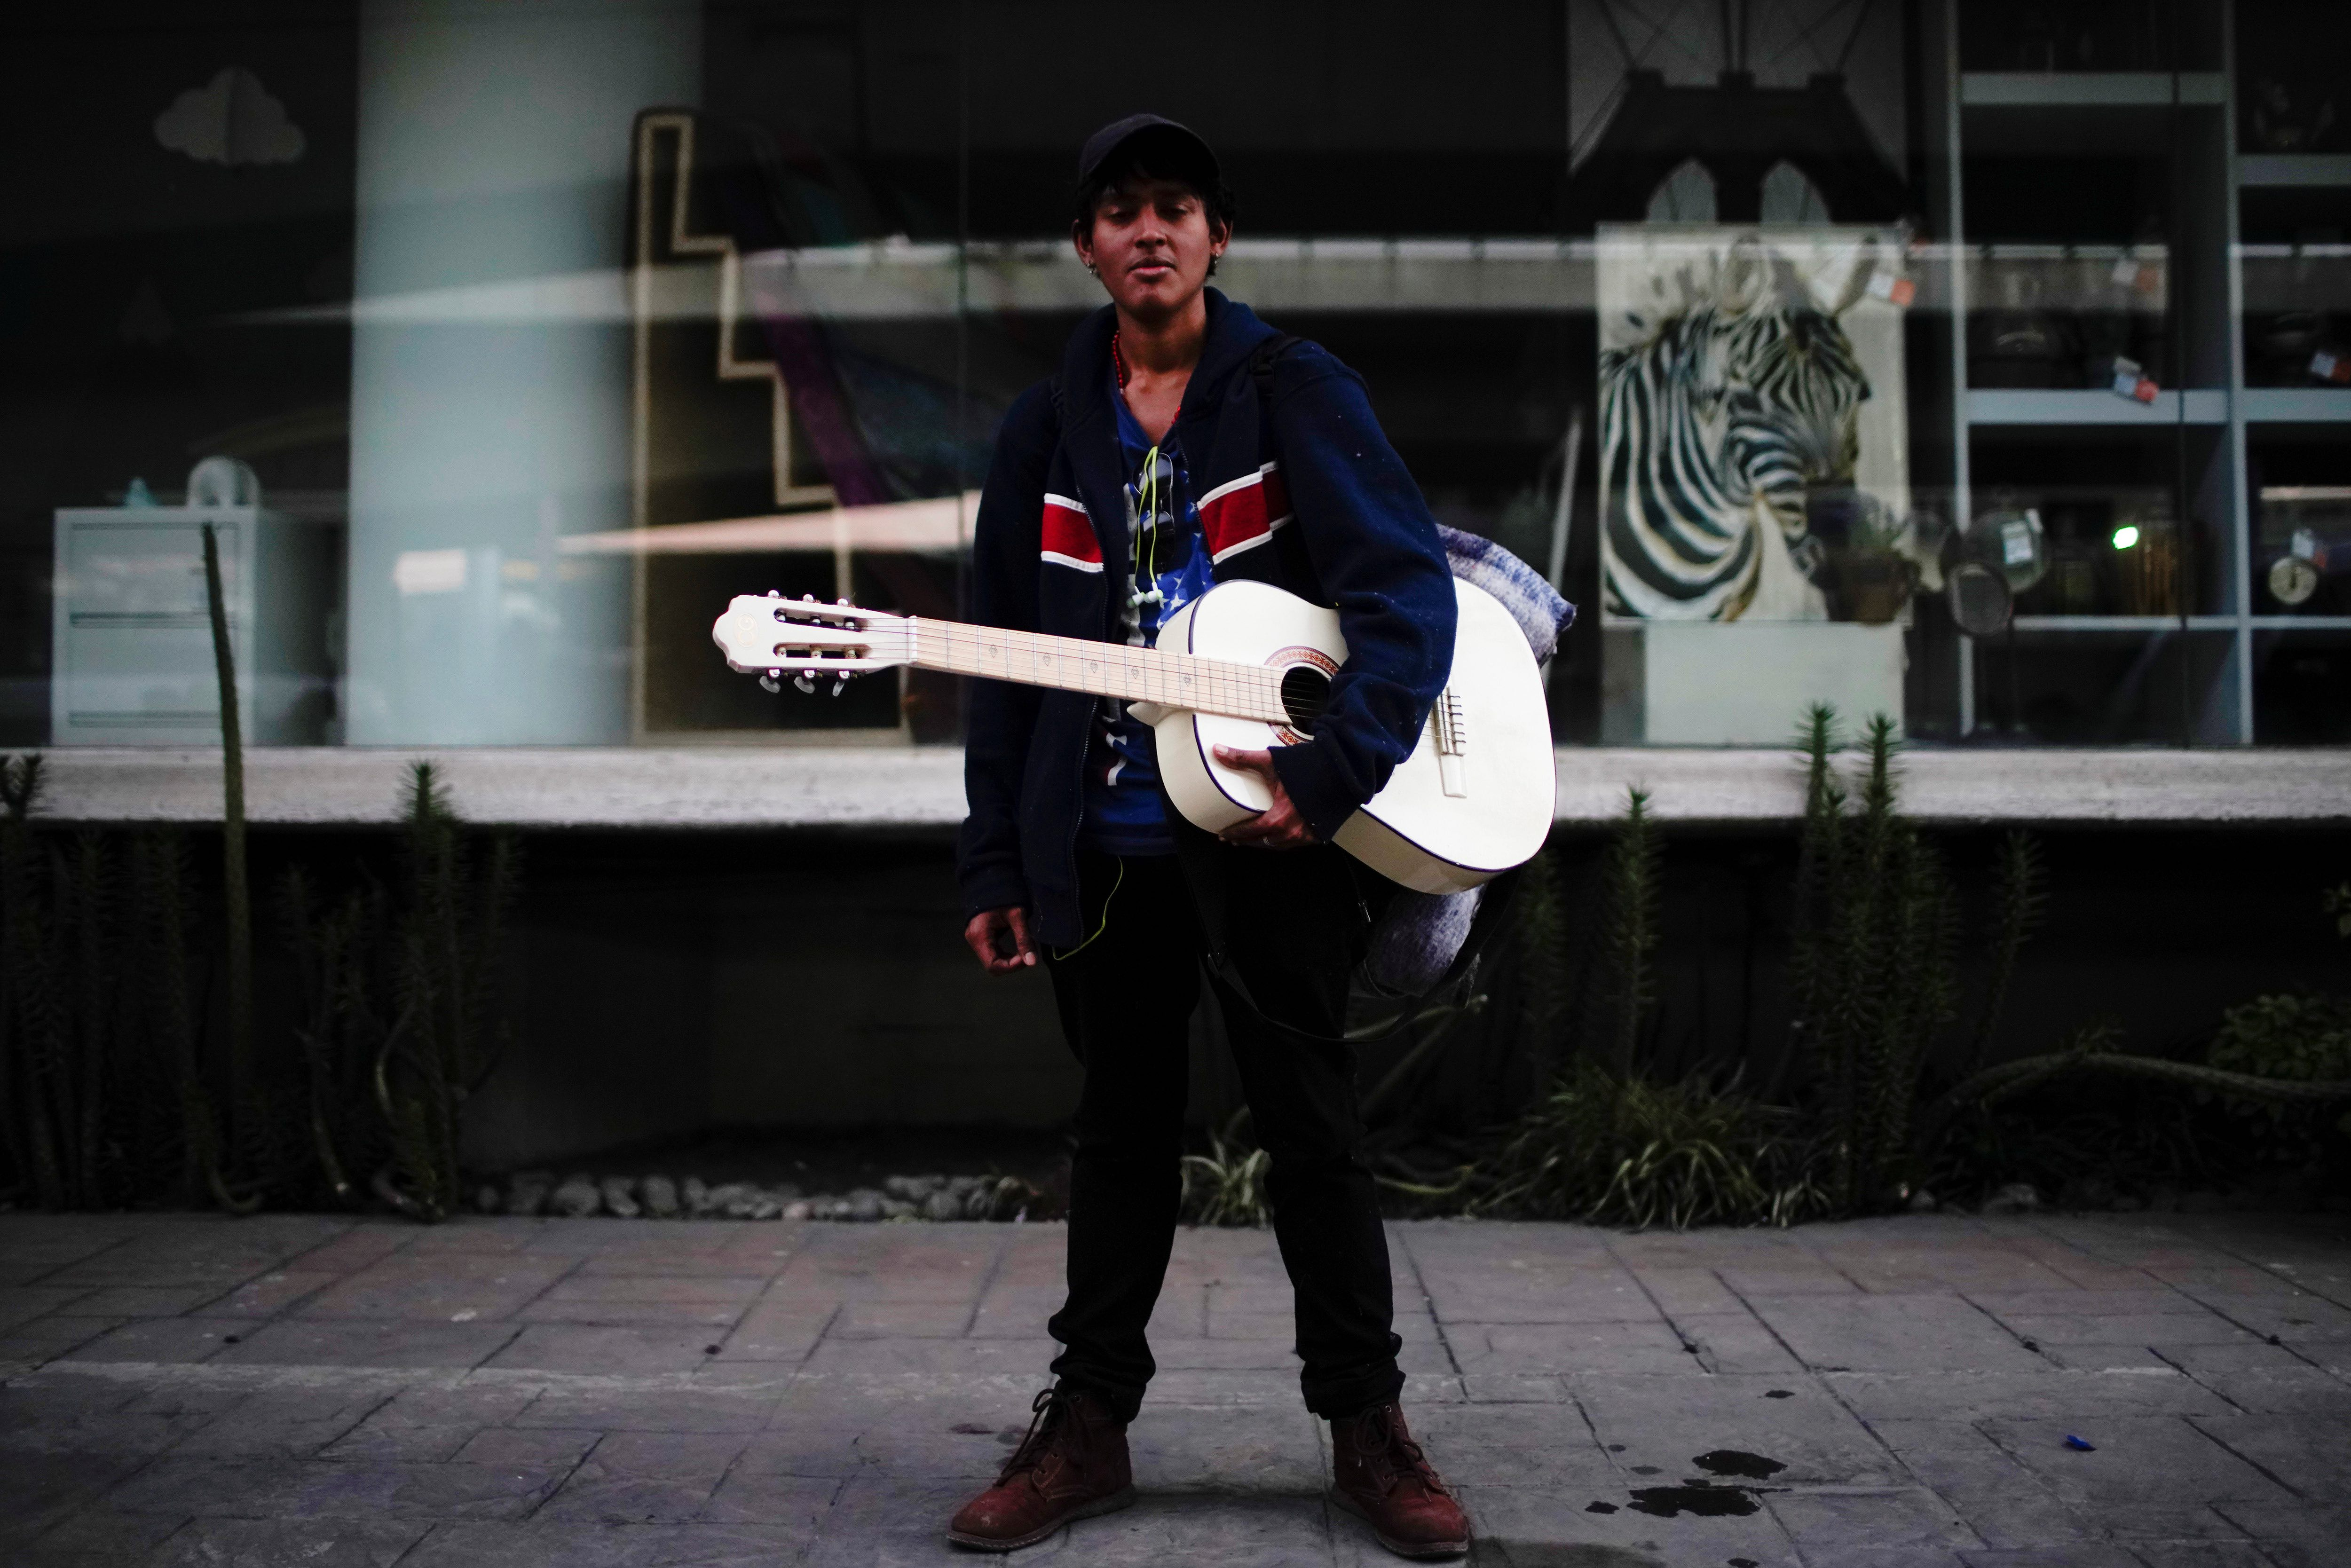 Migrant musician Cristian Martinez from El Salvador, poses for a photo during his journey towards the United States, in Mexico City